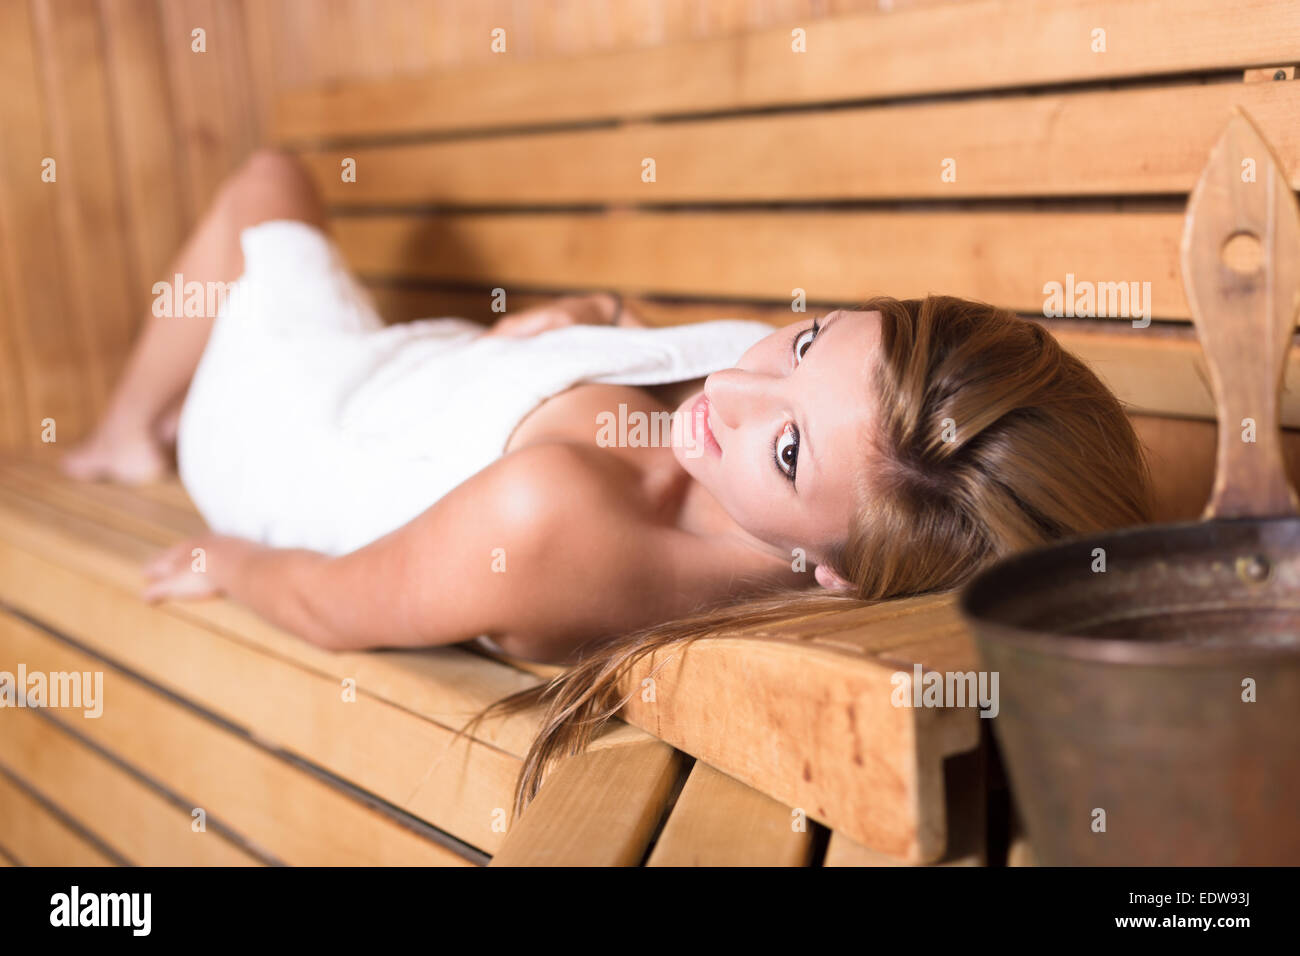 Lady relaxing in traditional wooden sauna. - Stock Image